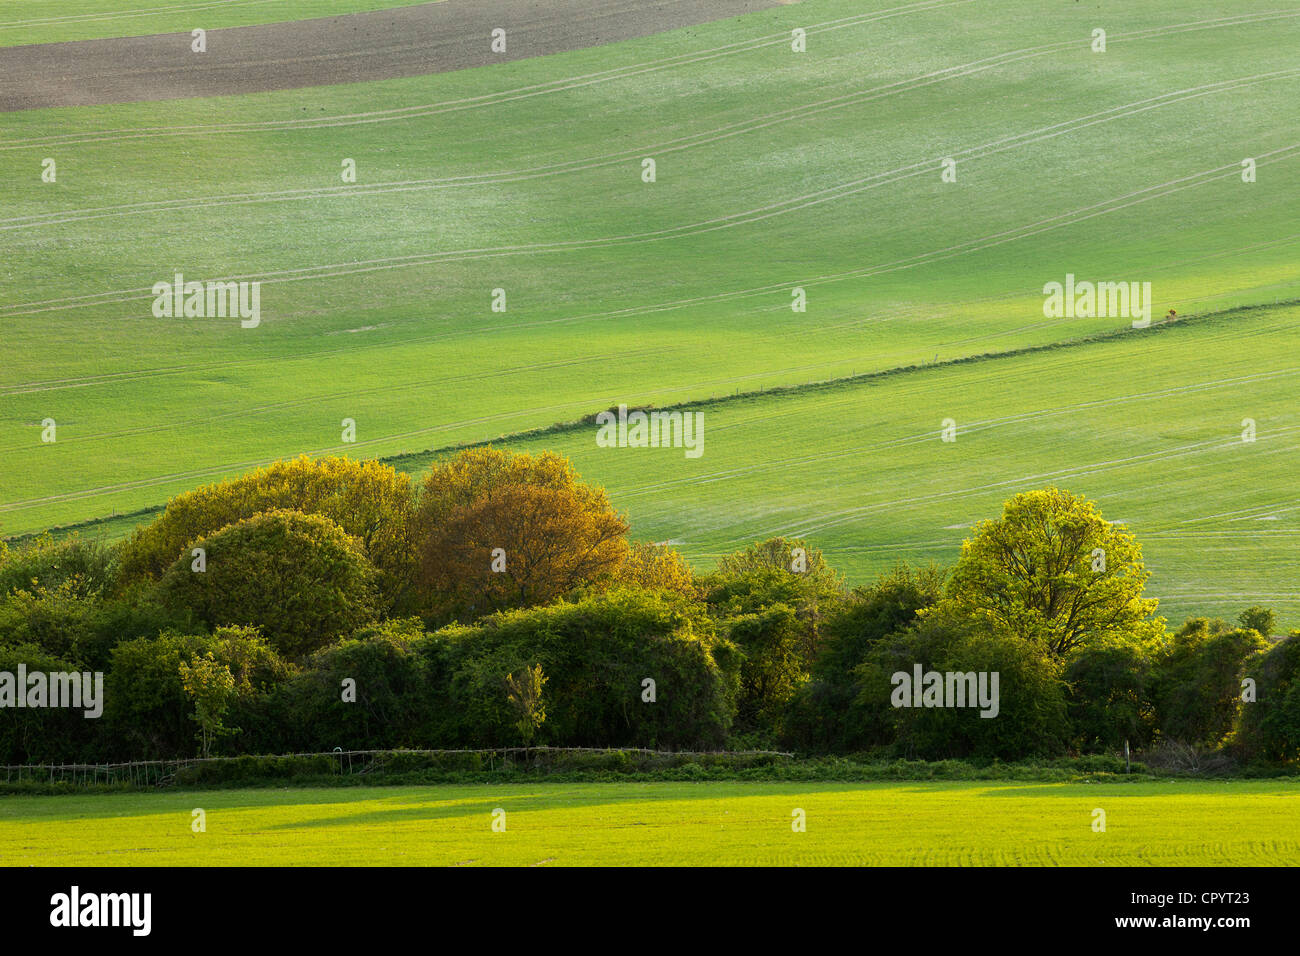 South Downs National Park, East Sussex, Inghilterra. Immagini Stock